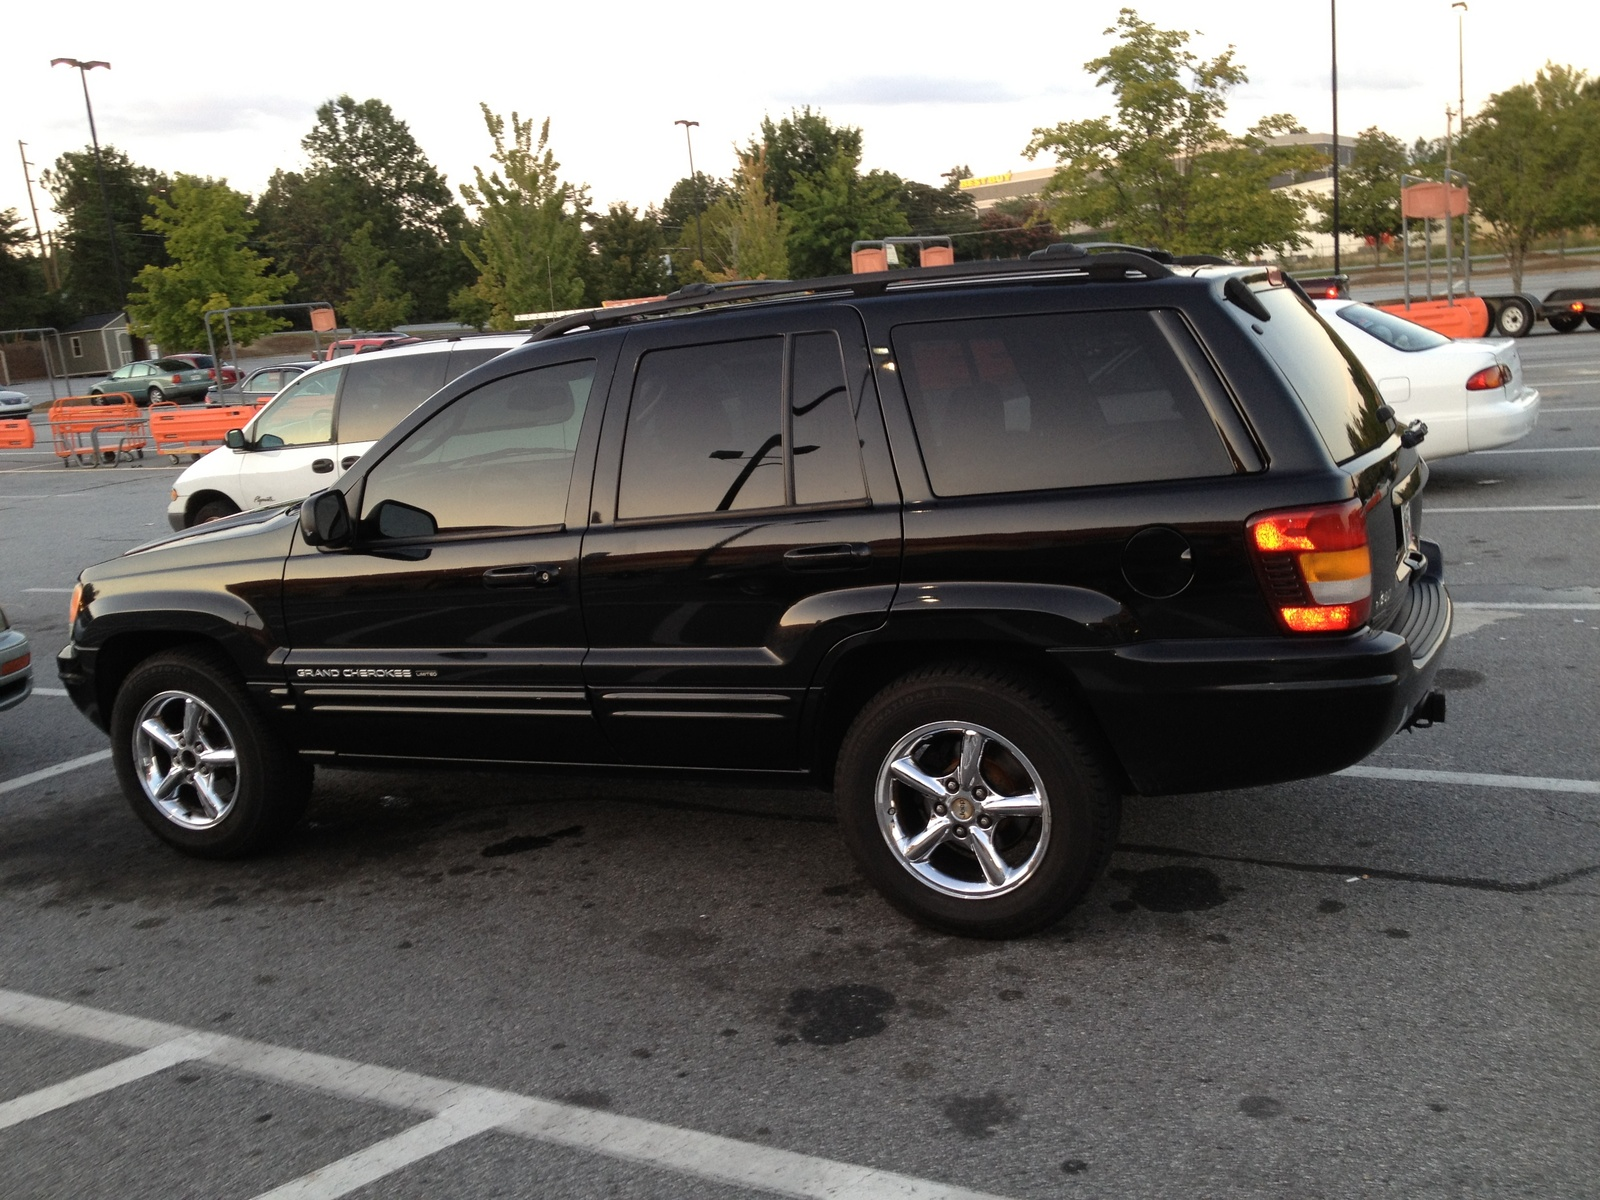 Jeep Grand Cherokee 4.7 2002 photo - 9